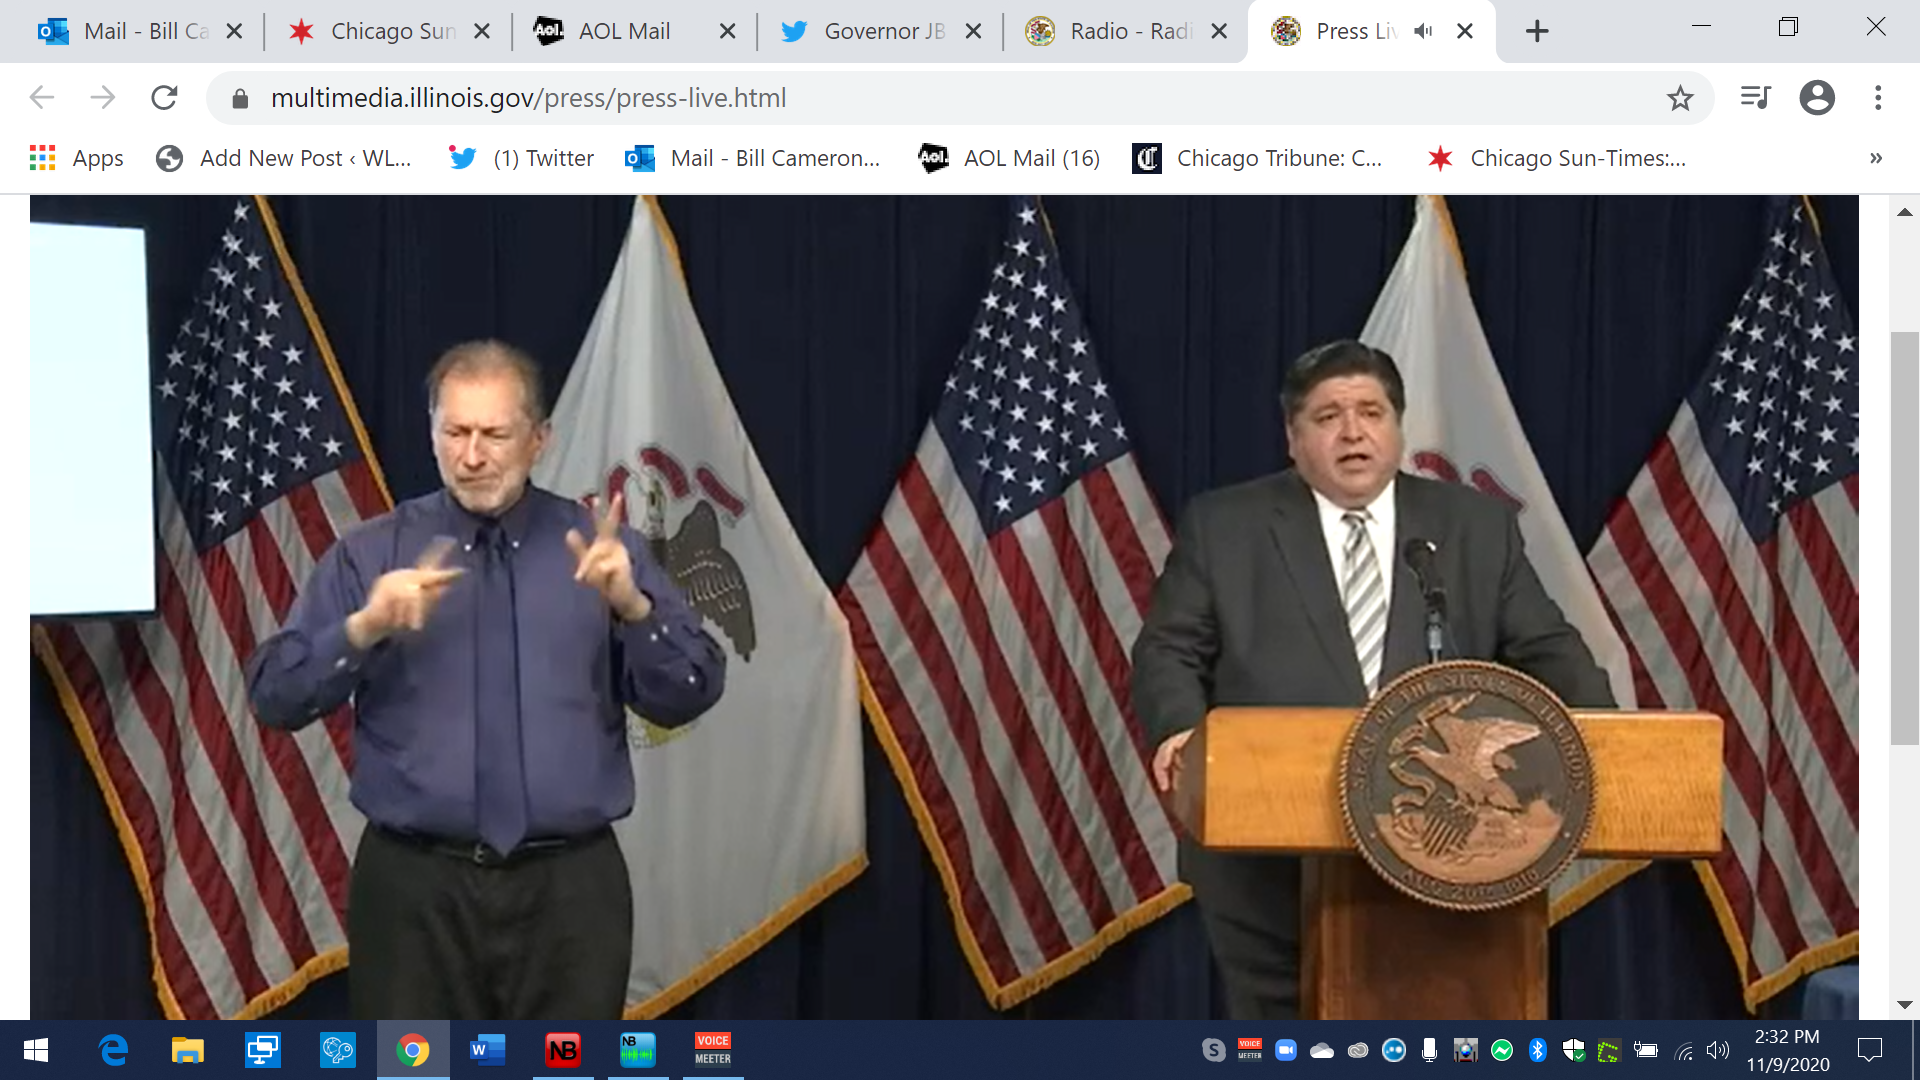 Pritzker imposes restrictions on DuPage, Kane, Will & Kankakee Counties